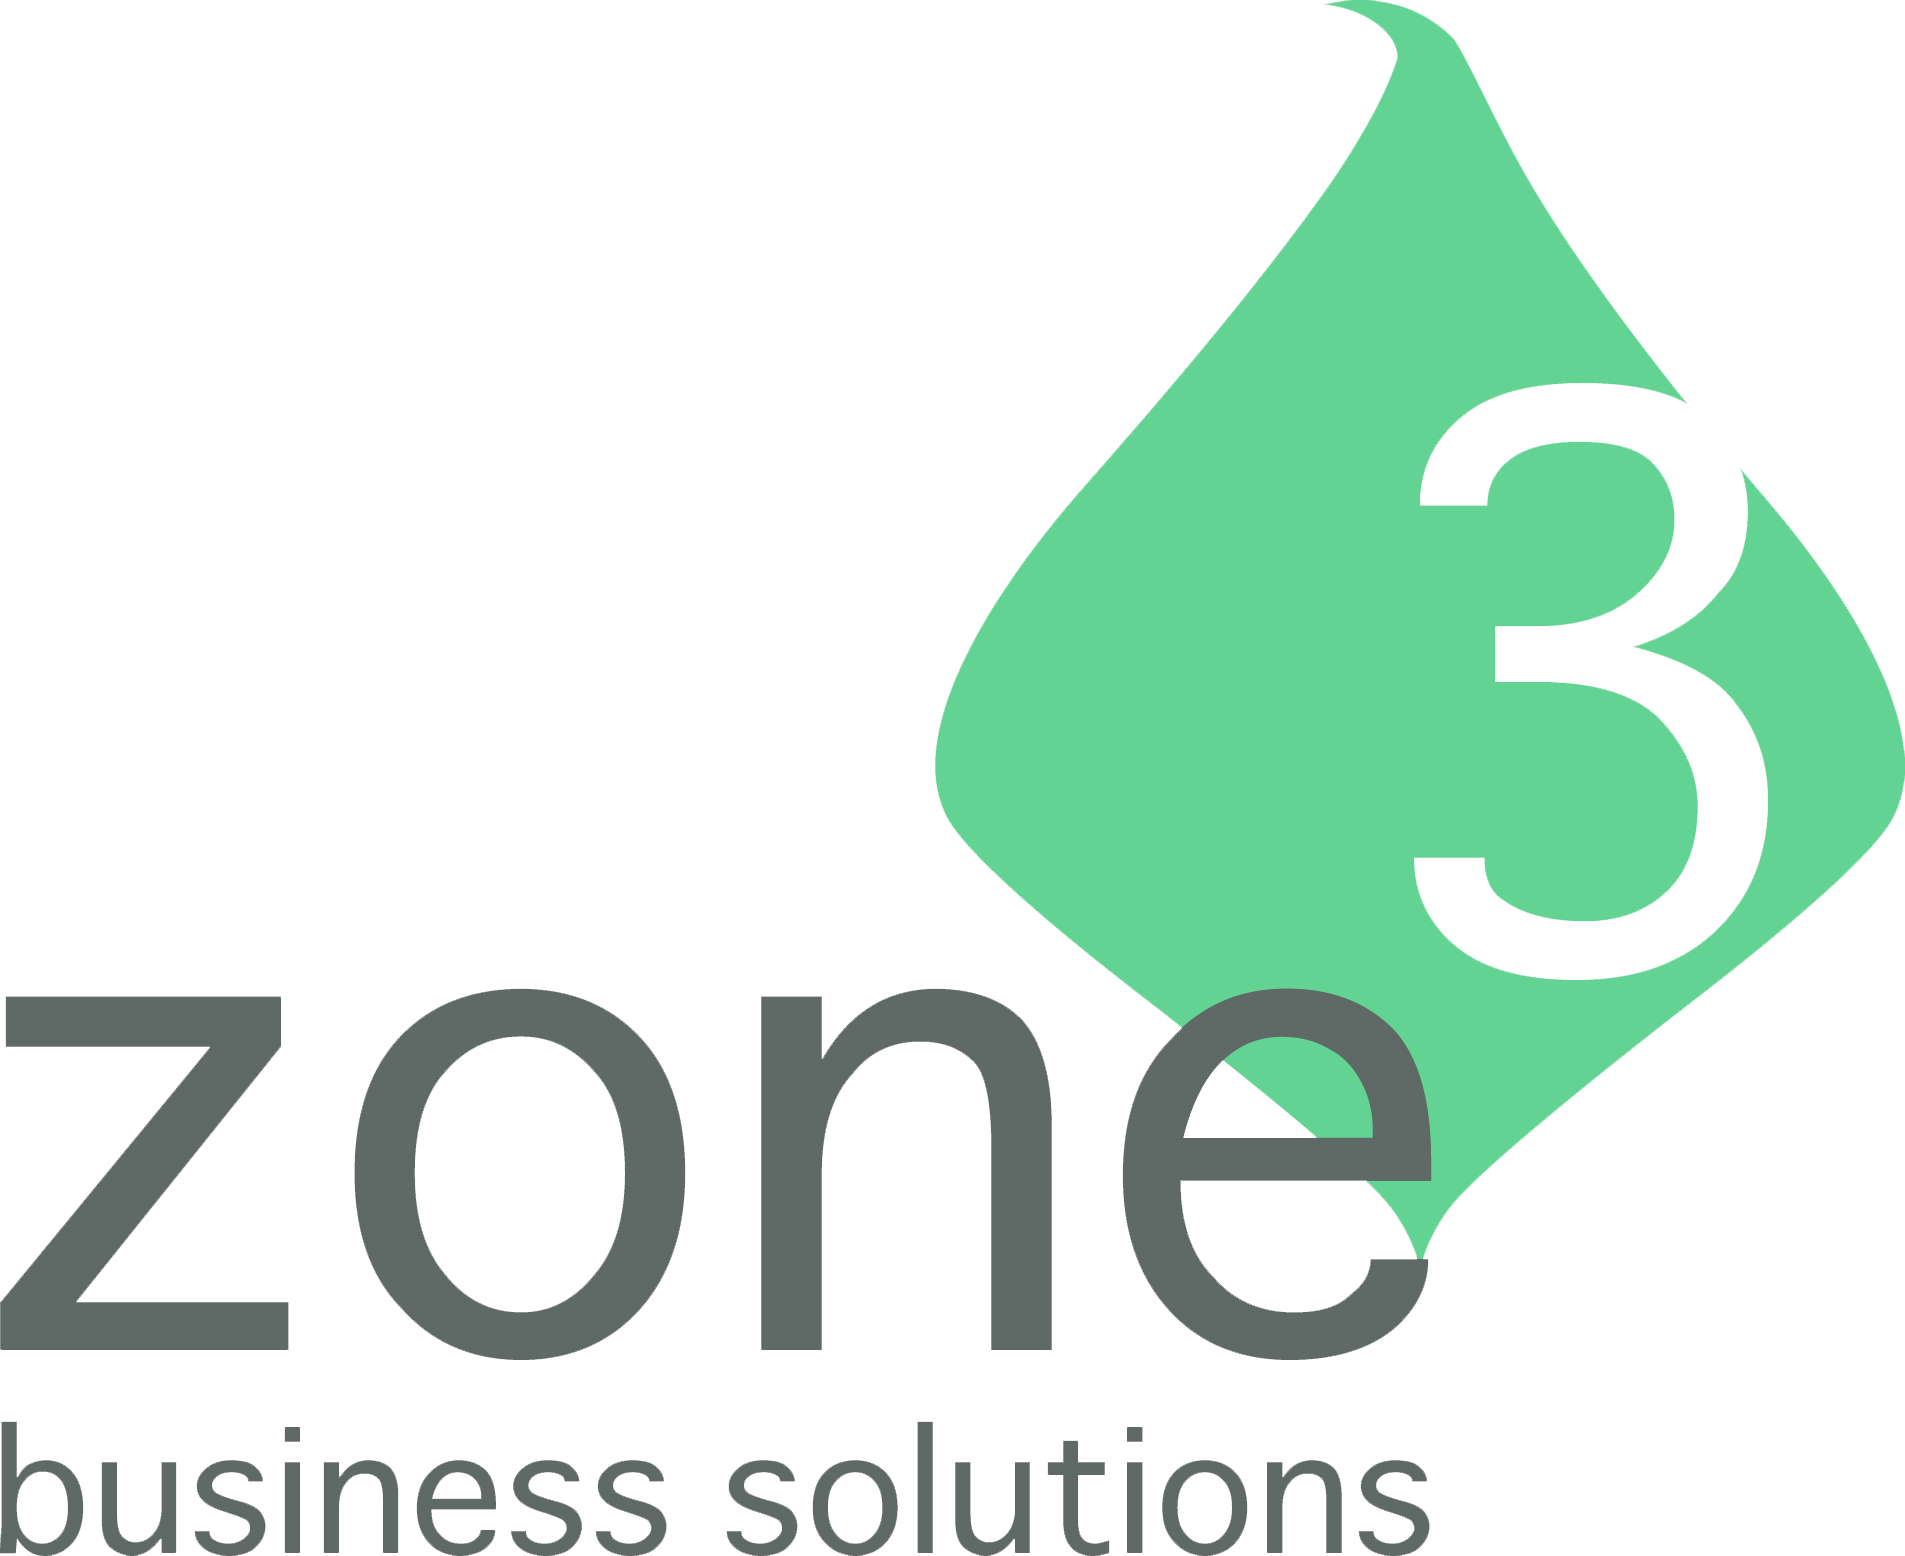 Zone 3 Business Solutions